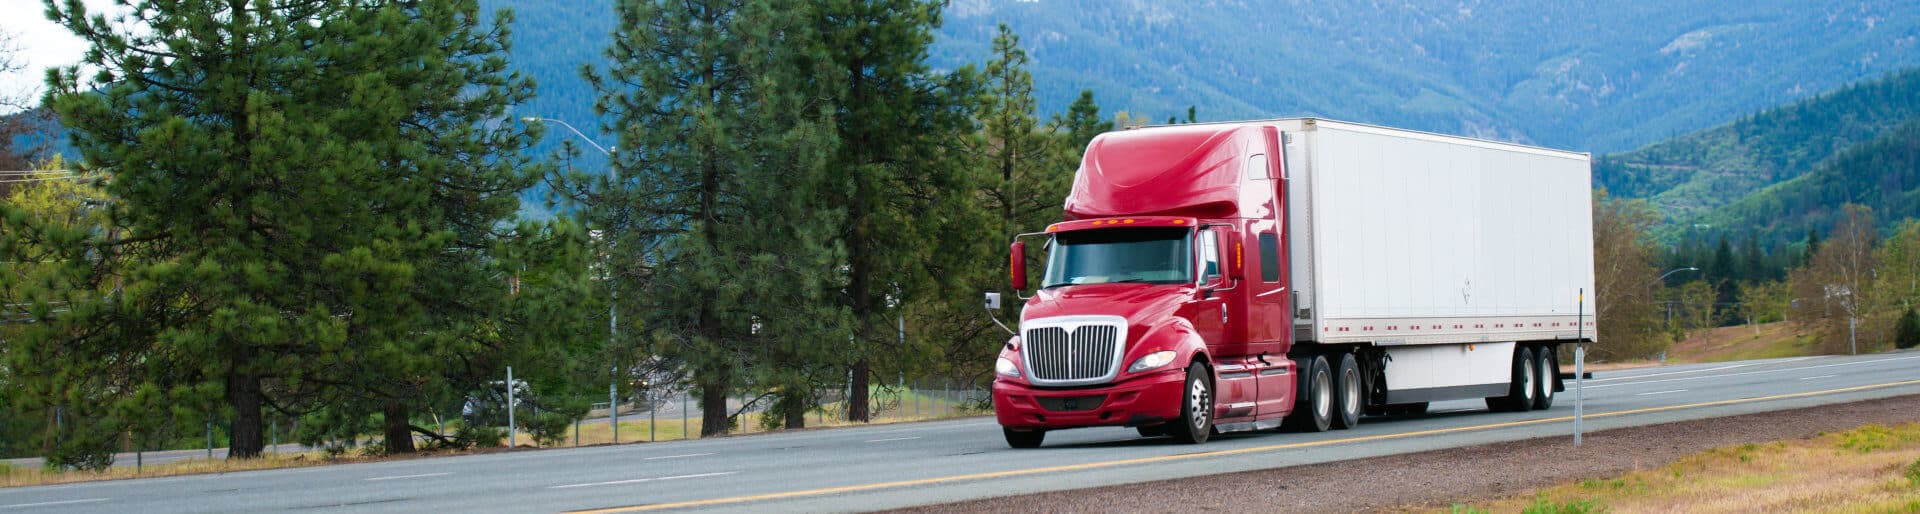 Red big rig modern shiny semi-truck with white dry van trailer with aerodynamic skirt move on straight